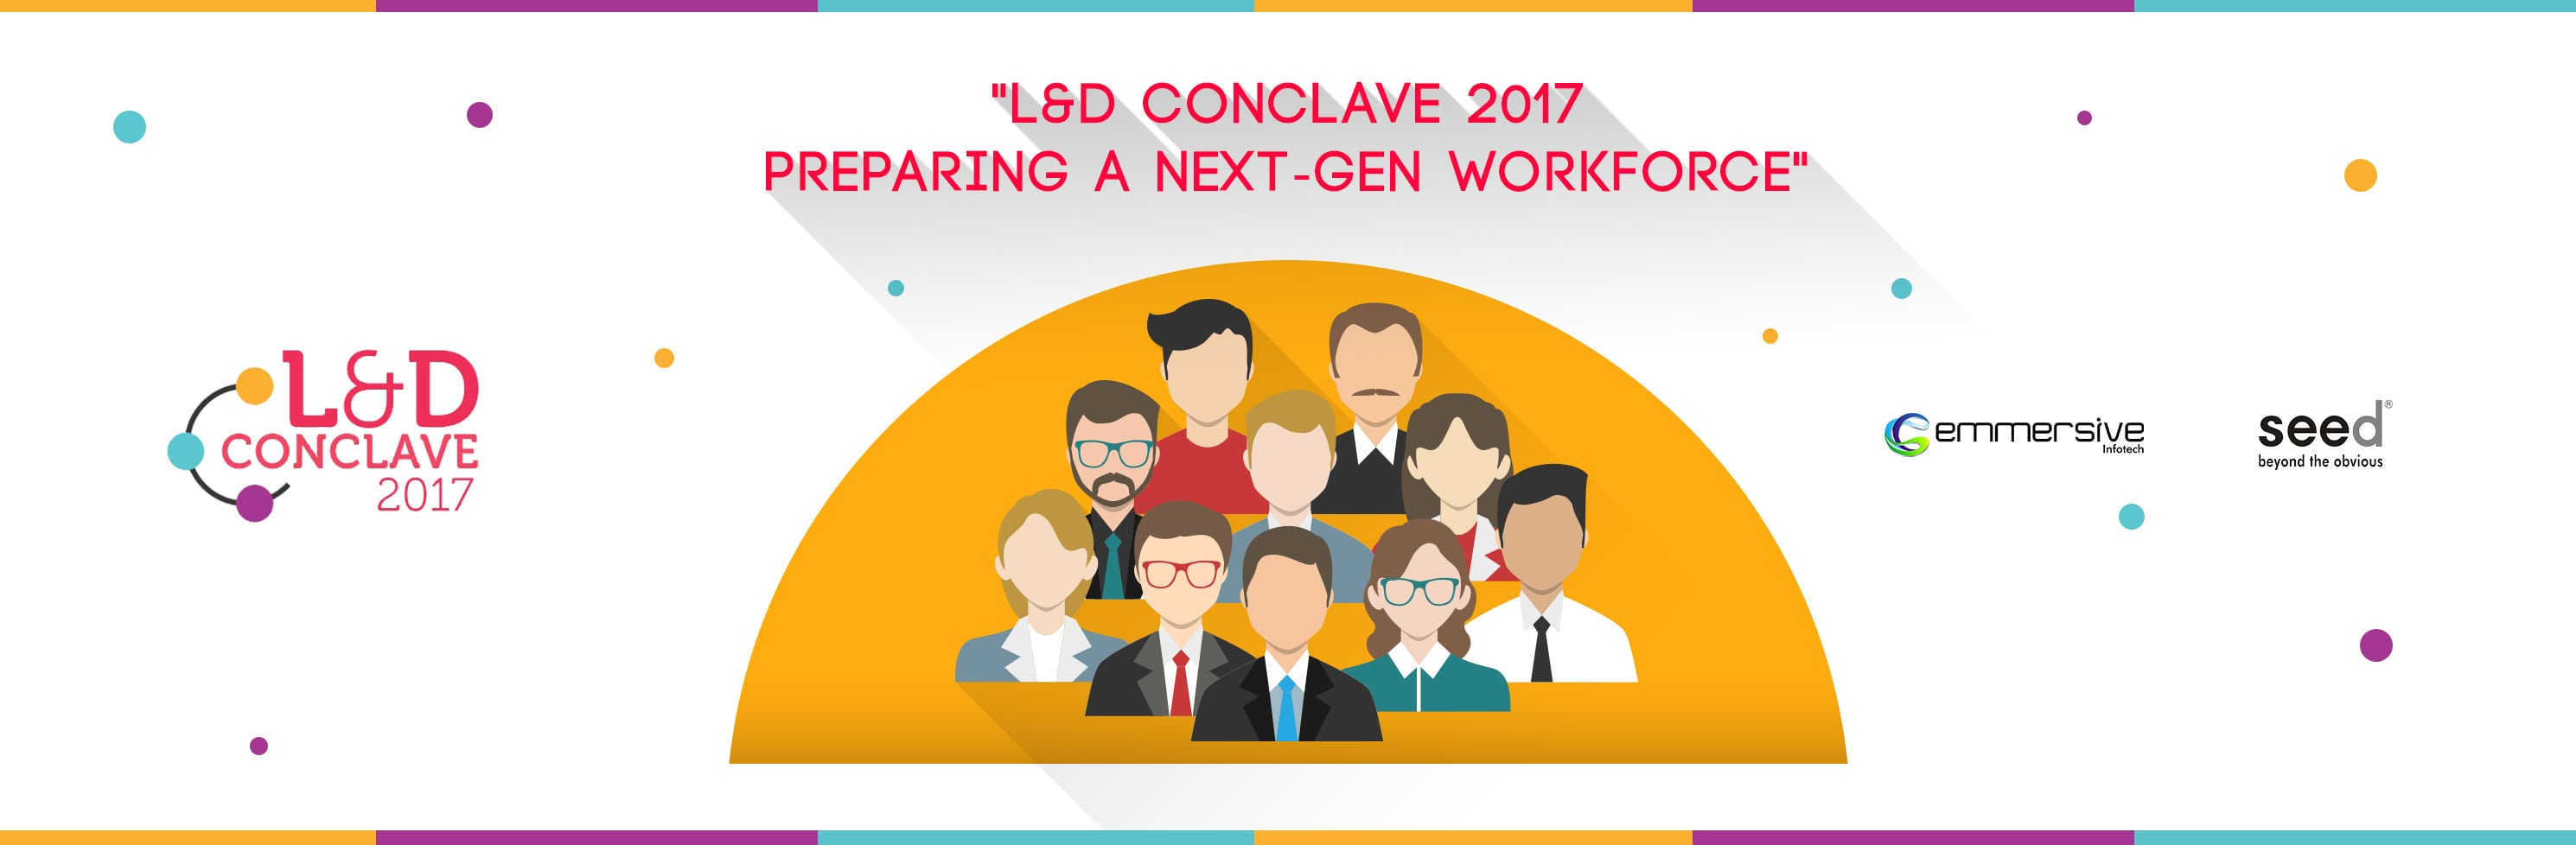 LD-conclave-2017.jpg